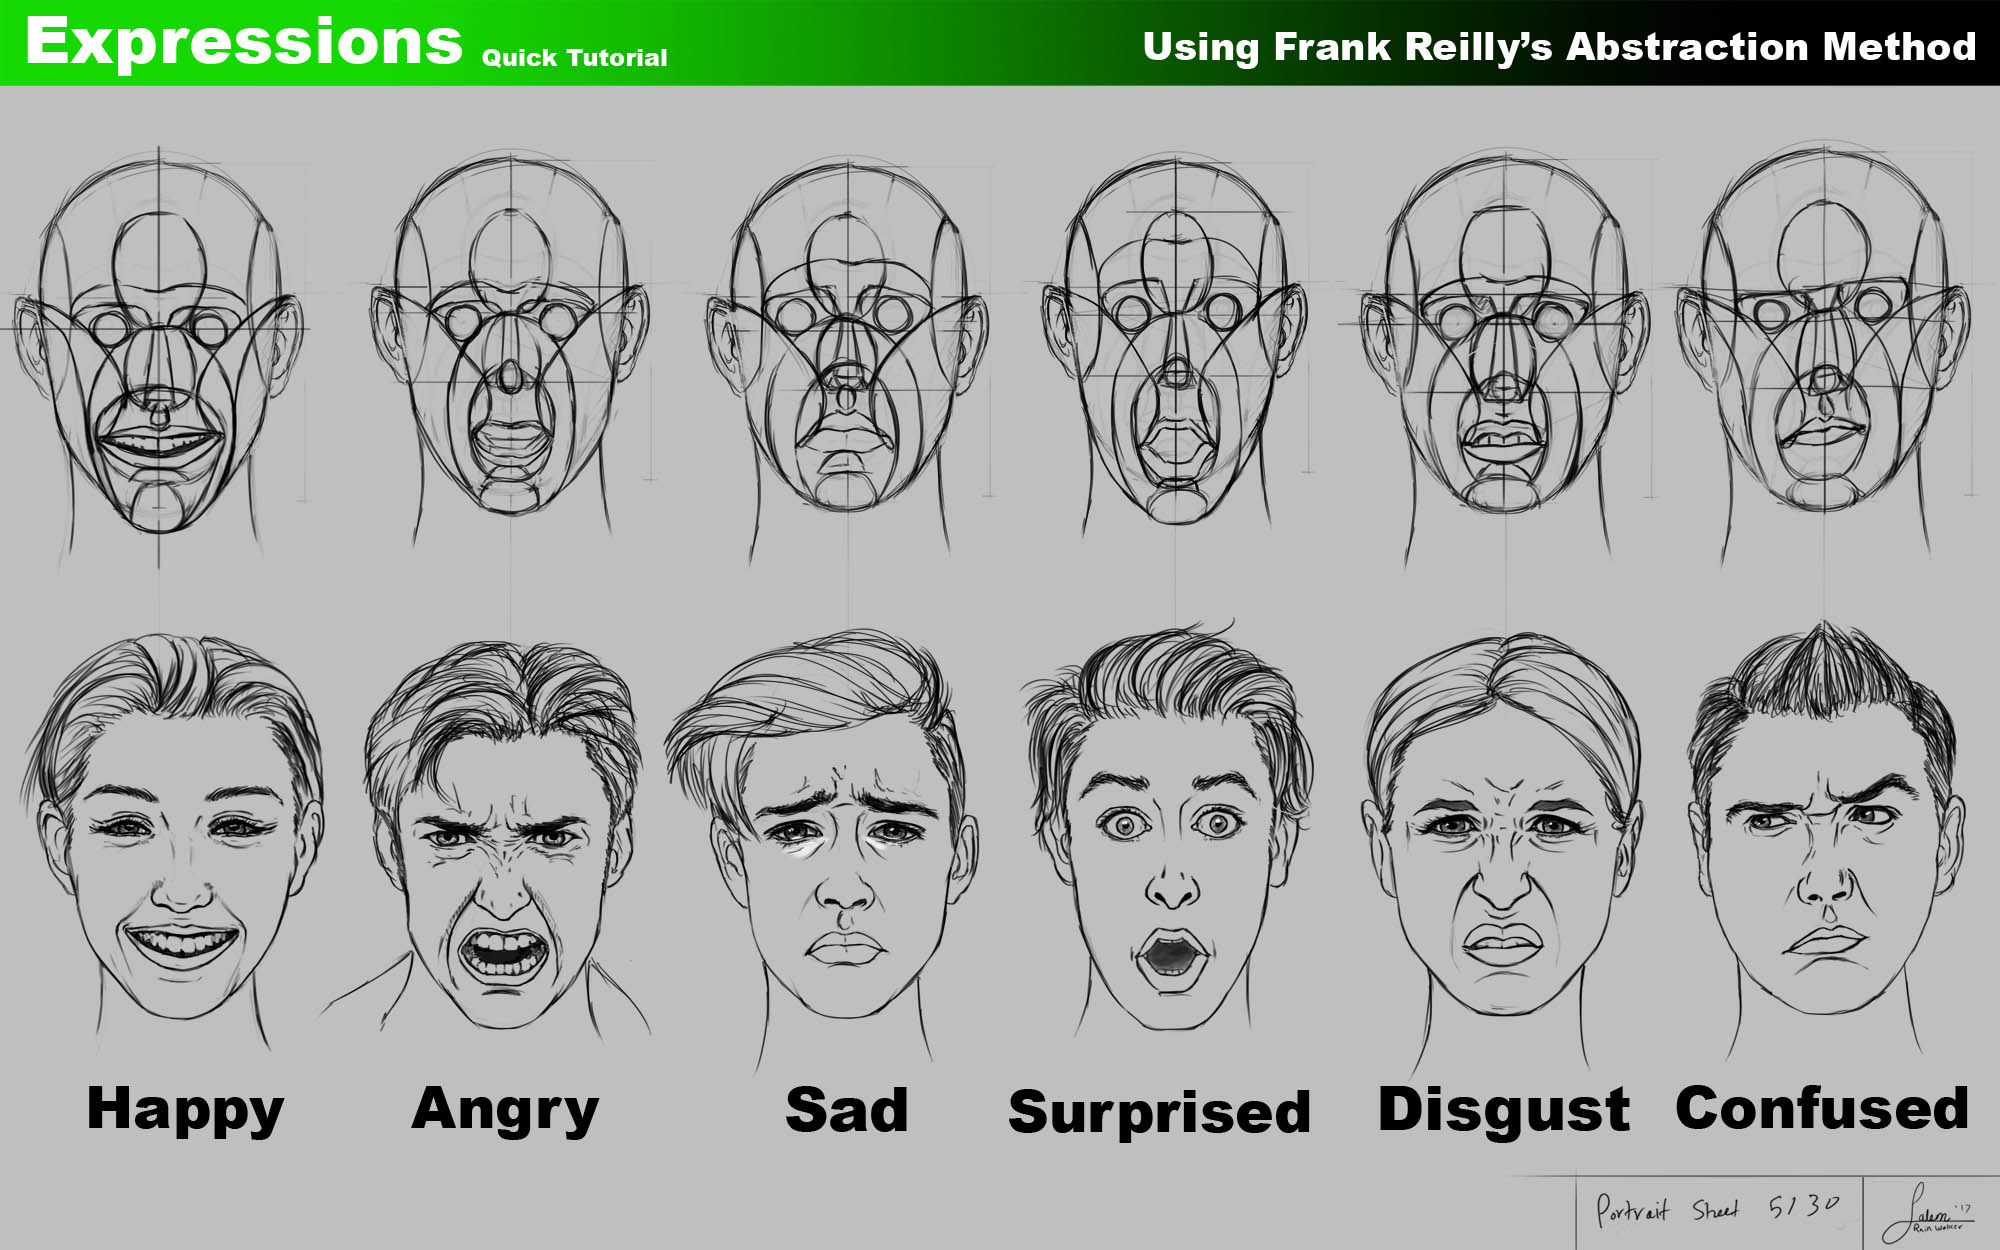 Using Frank Reilly's method to draw Facial Expressions